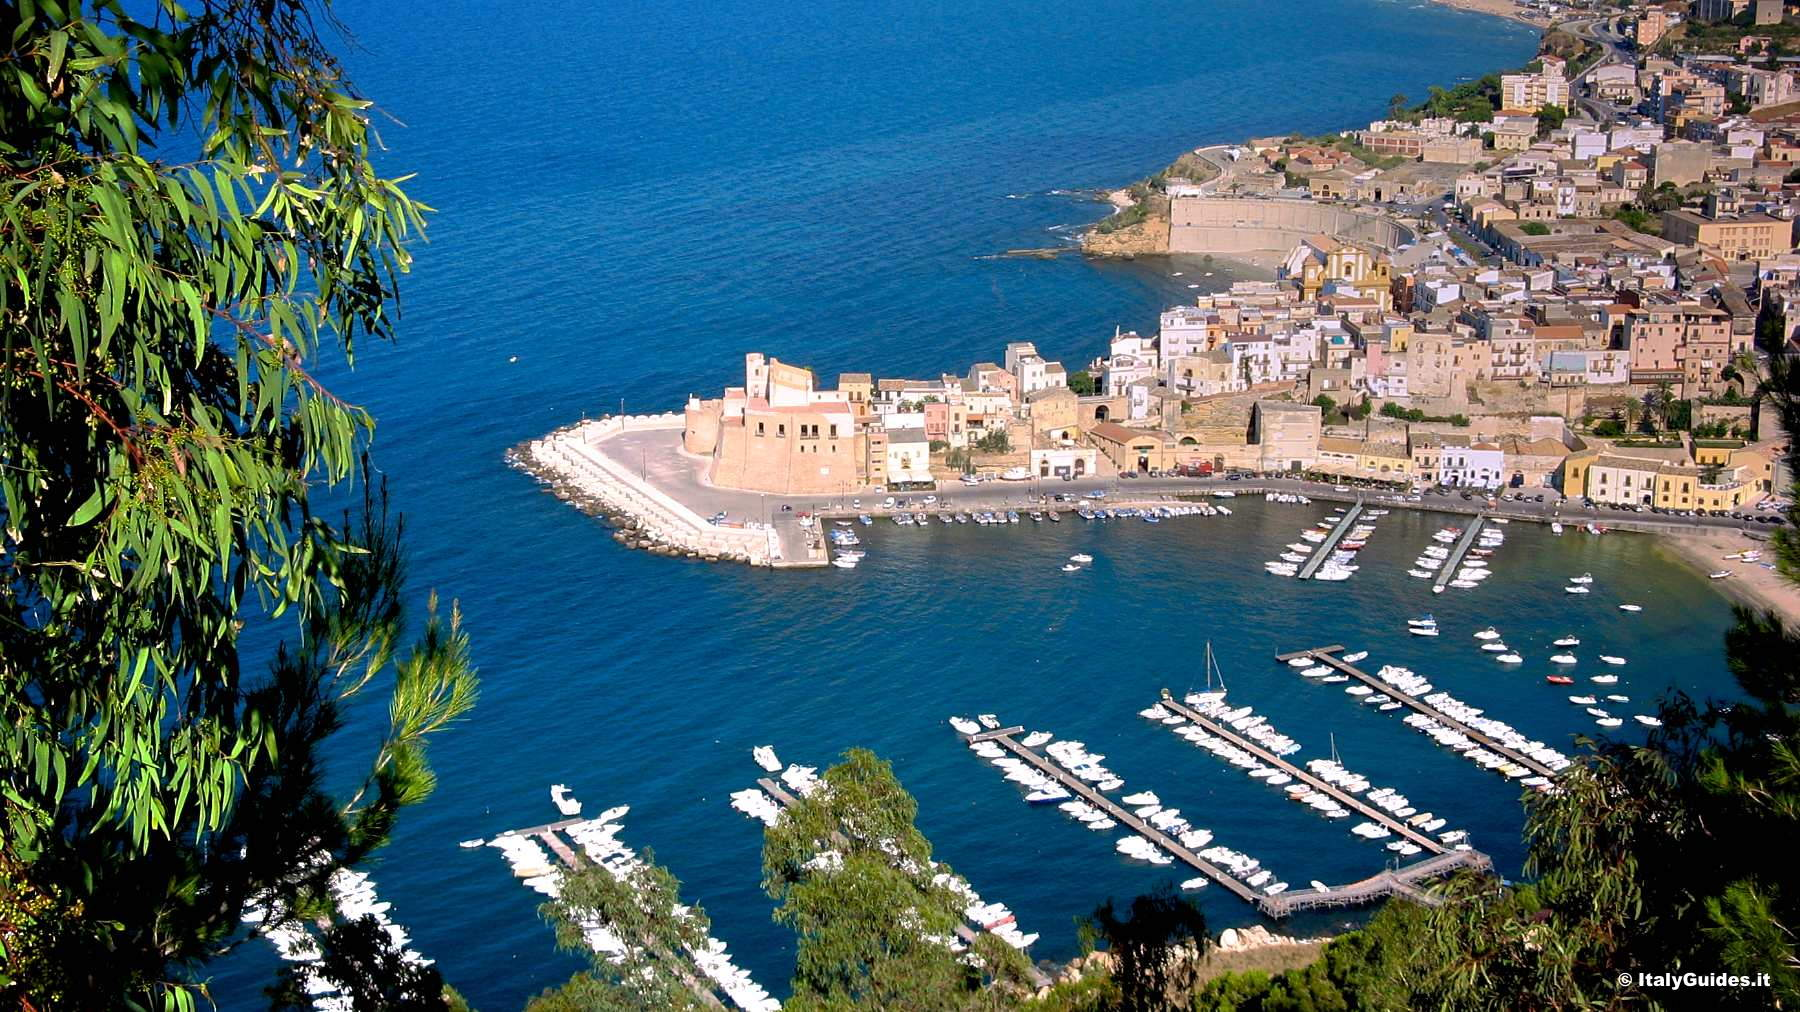 Trapani Italy  city pictures gallery : of Trapani, photo gallery and movies of Trapani, Sicily Italy ...